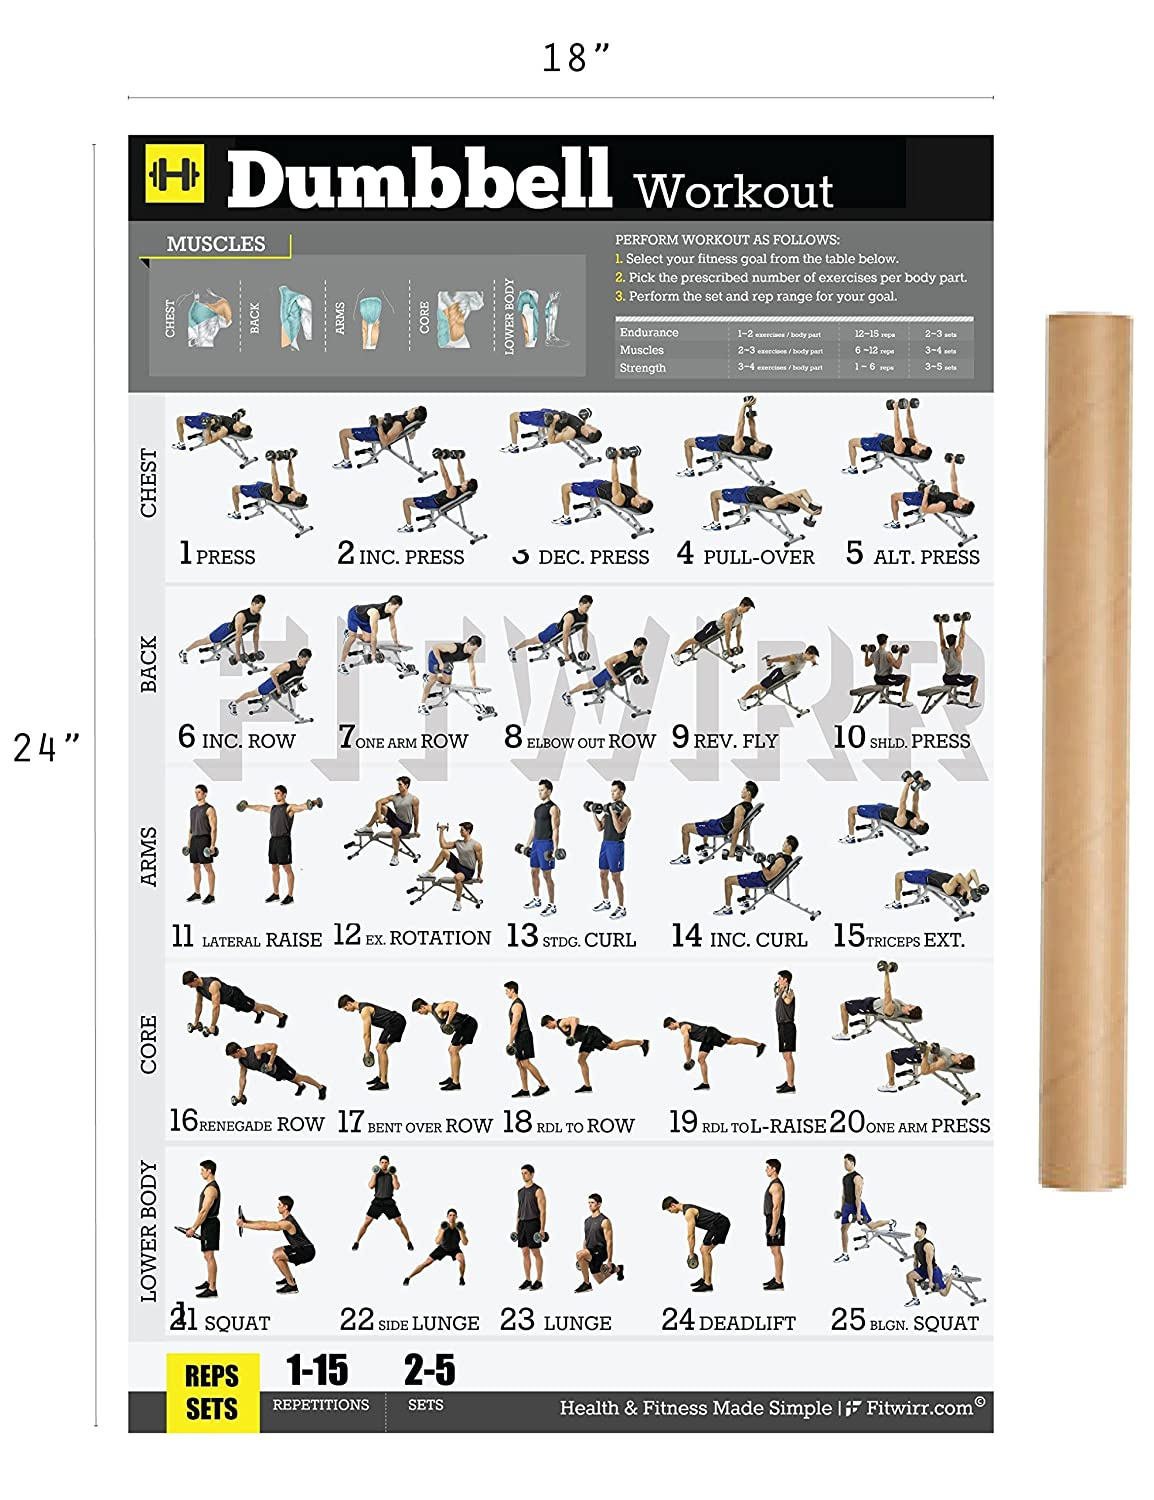 Dumbbell Exercises Workout Poster - Now Laminated - Home Gym - Workout  Plans for Men - Free Weights - Strength Training Routines - Build Muscles -  Fat